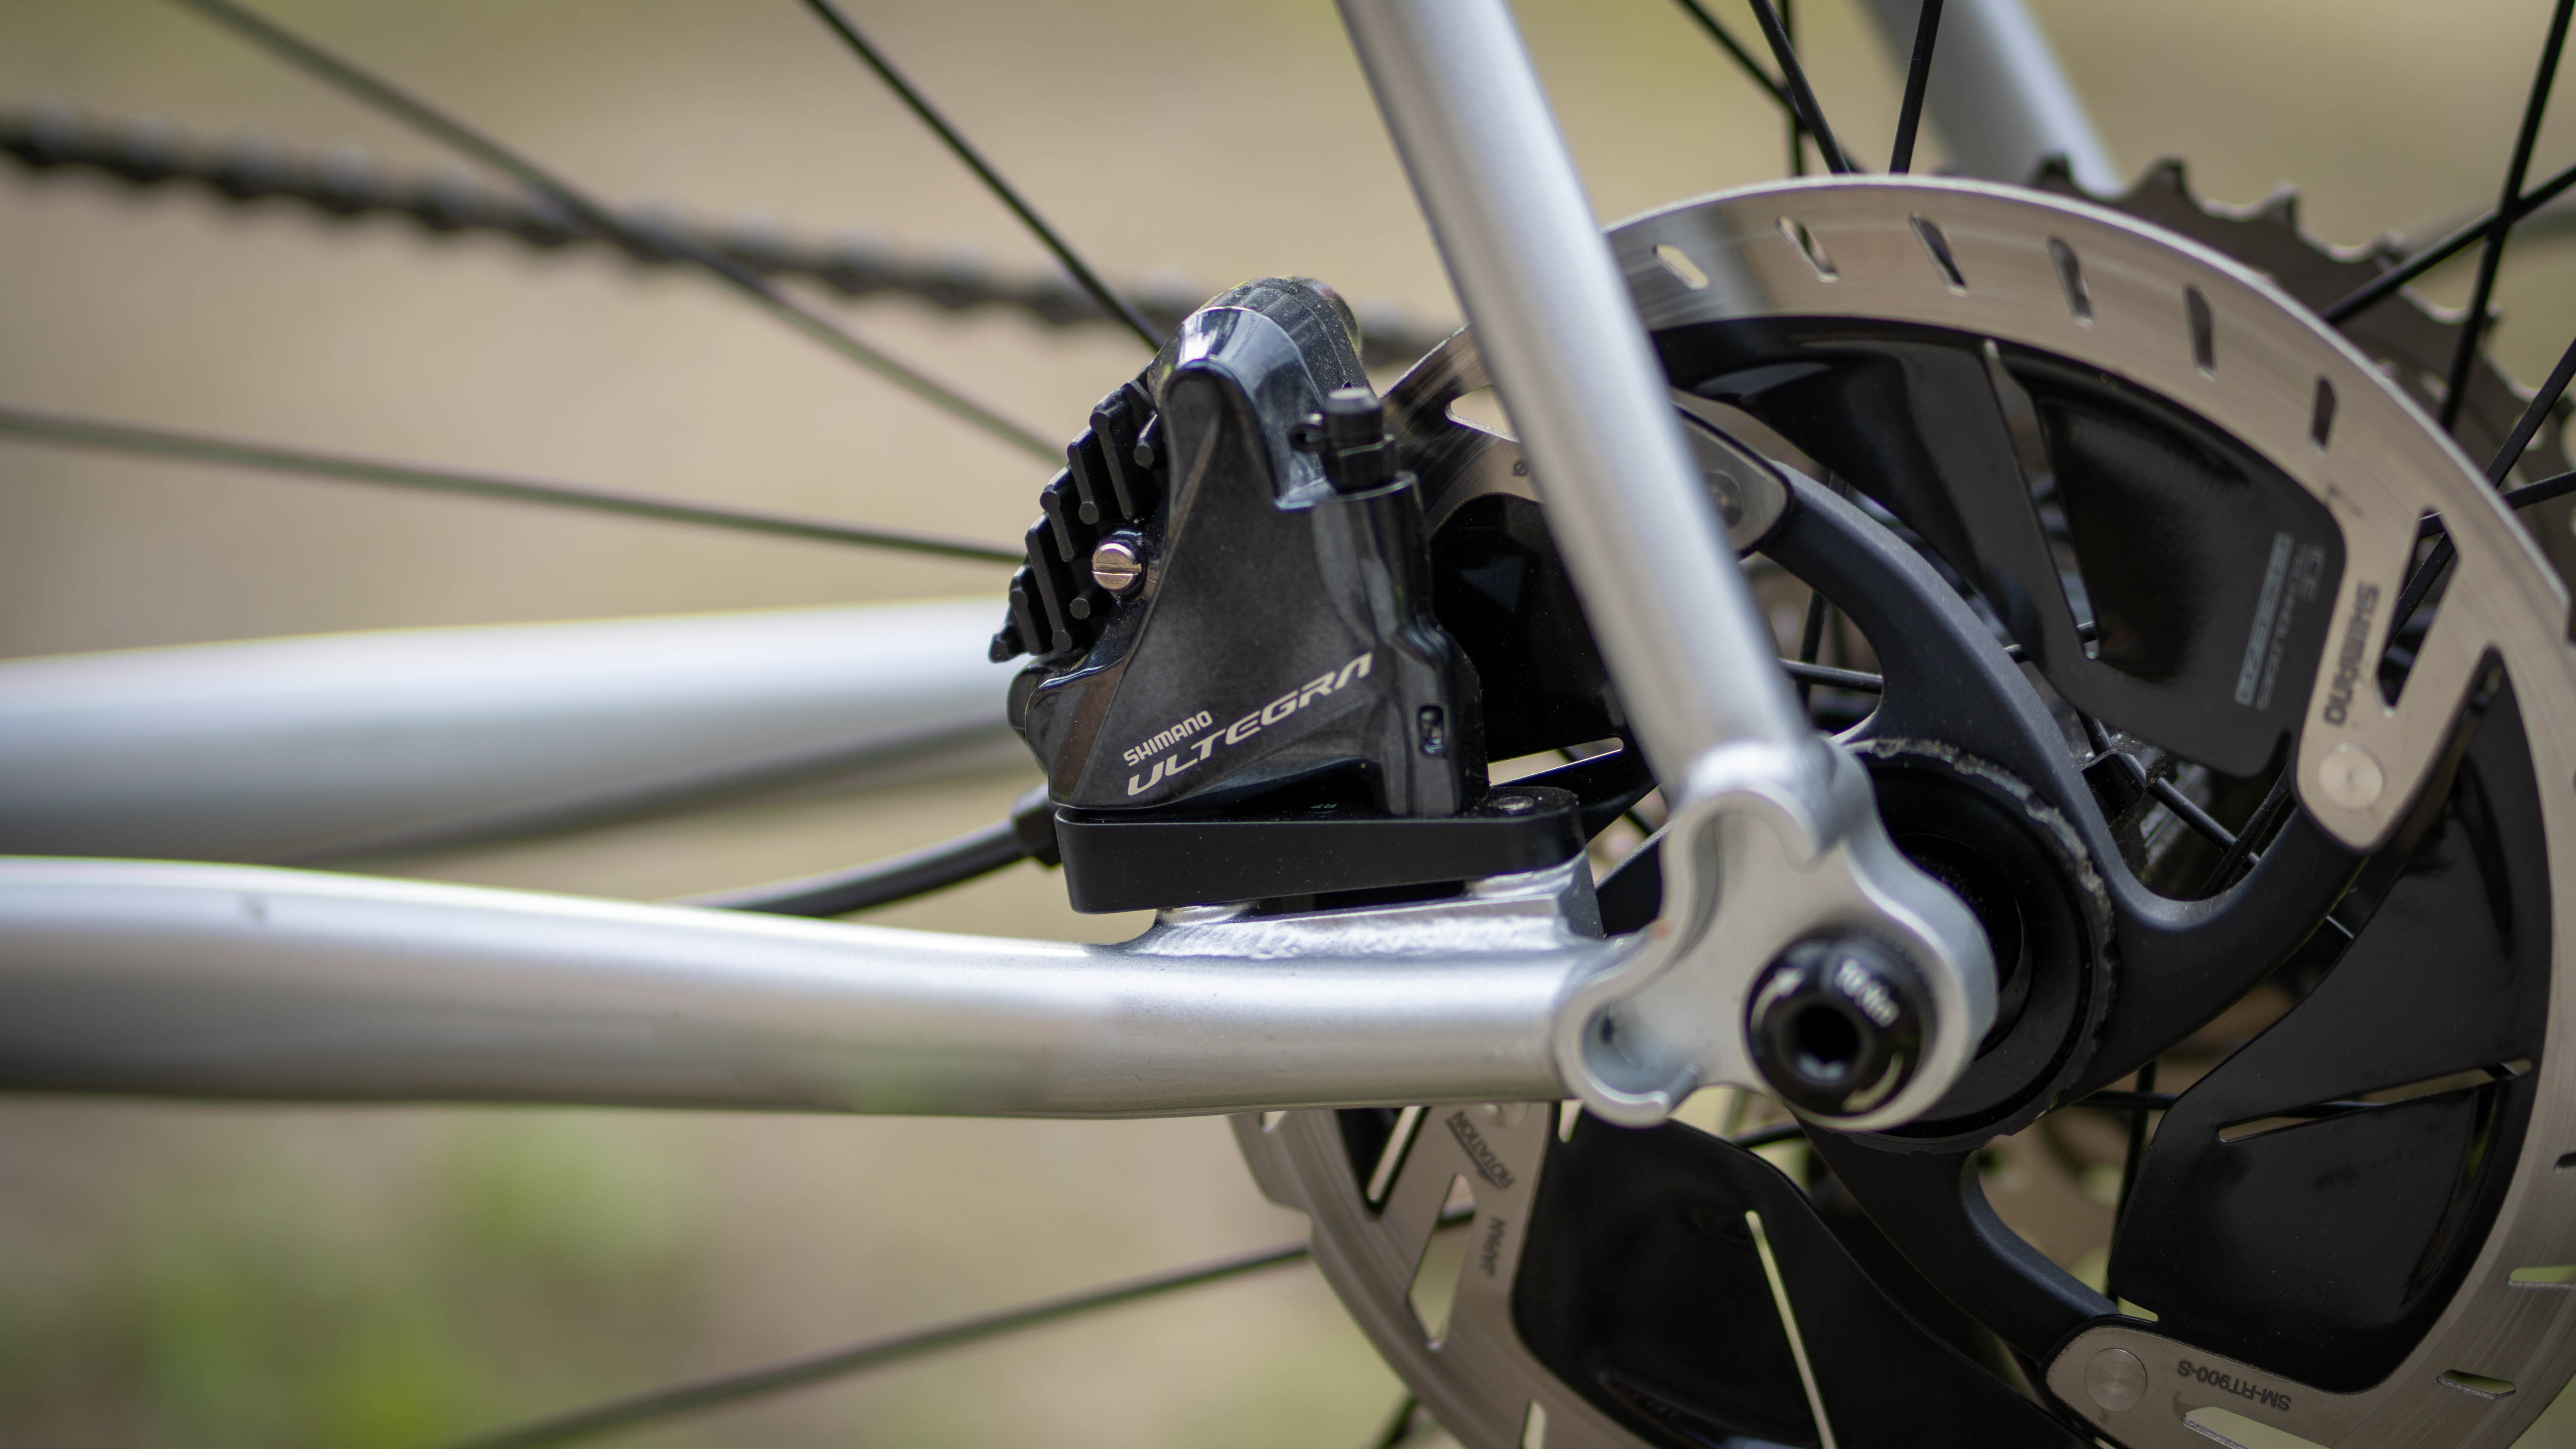 Direct-mount brakes are up to speed with current frame standards, but seem to spread the stays a bit wider, which resulted in a bit of heel rub.